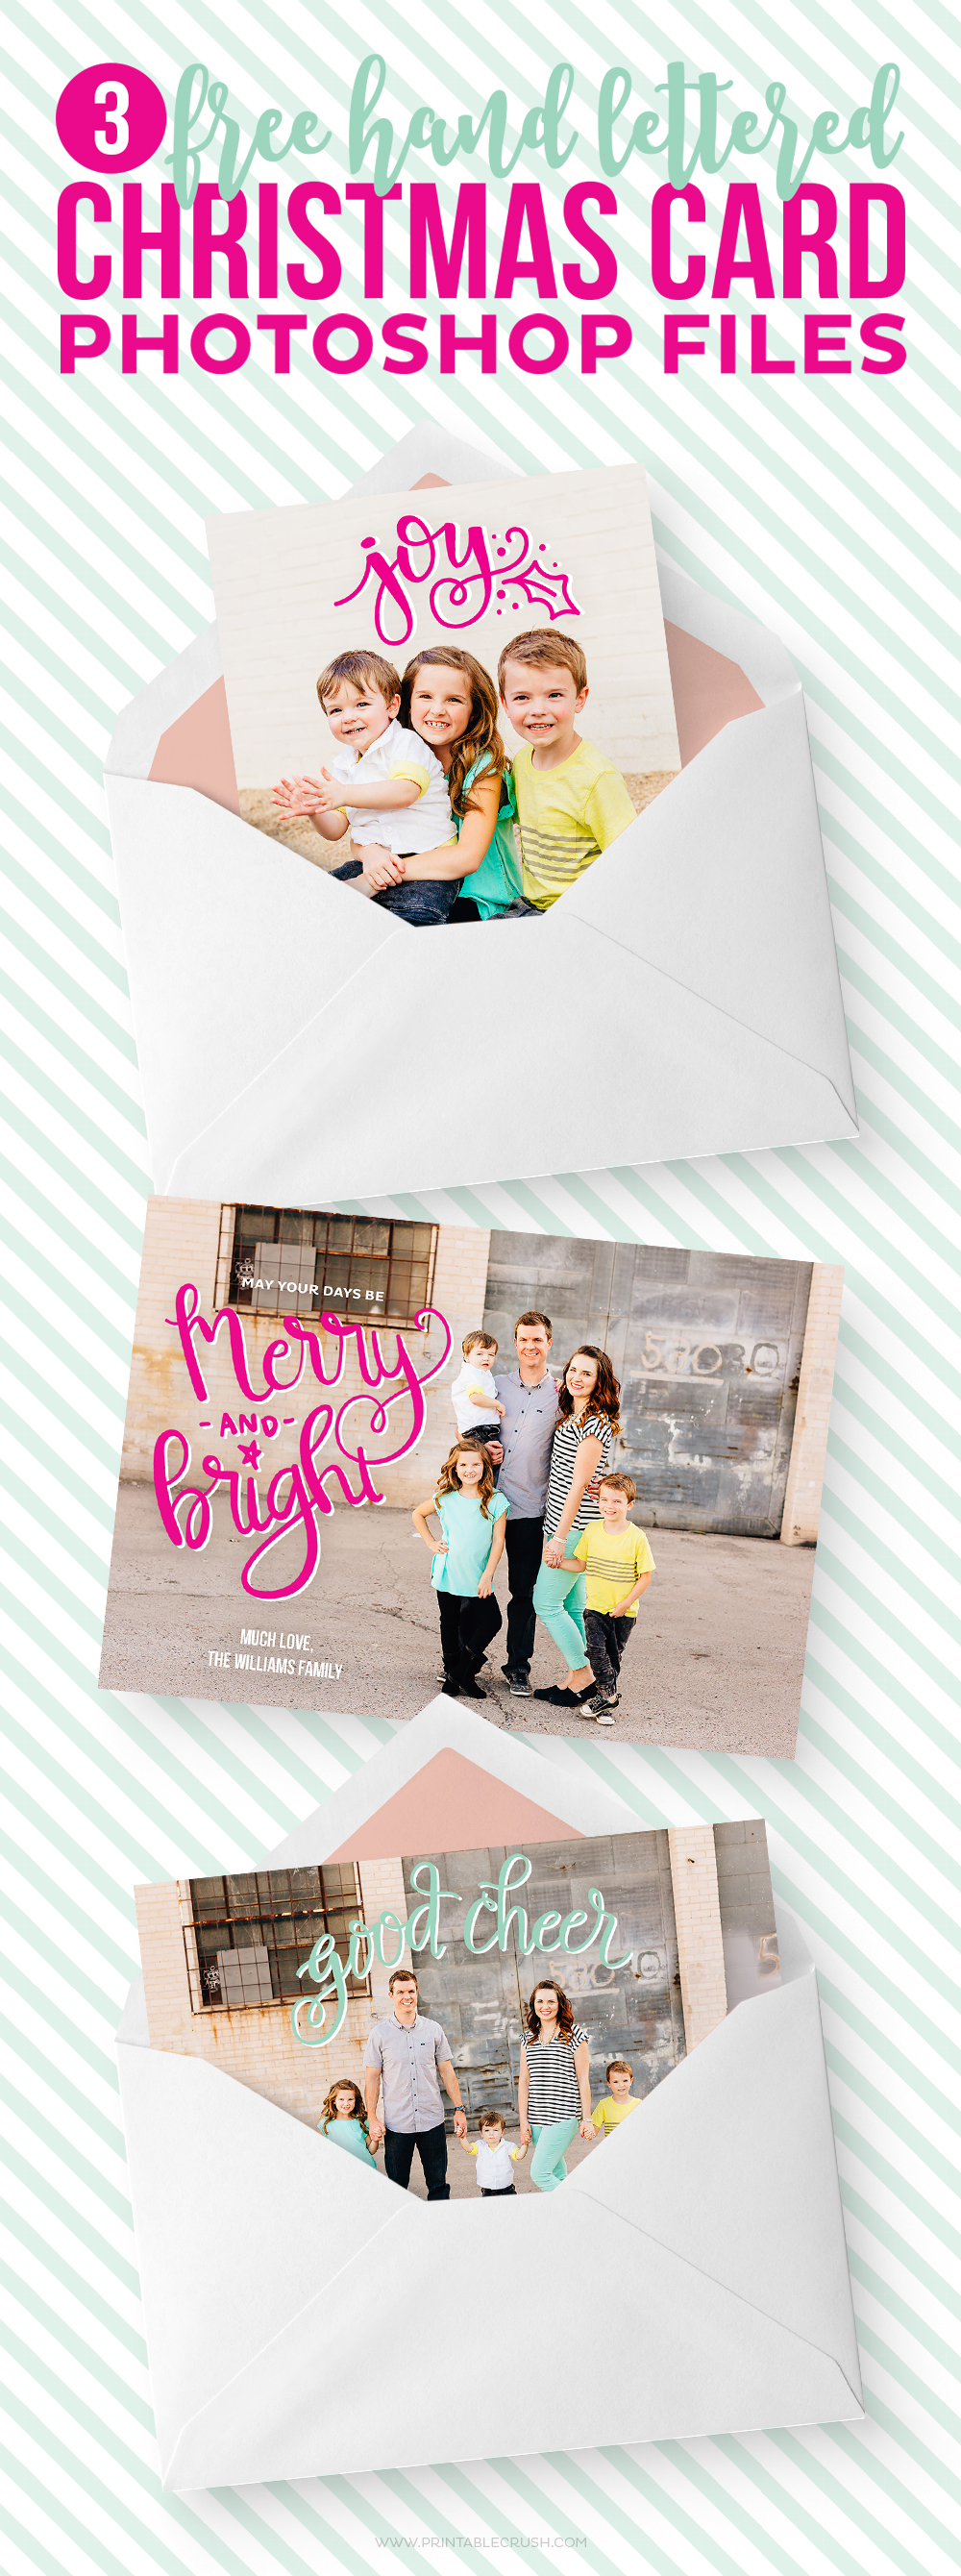 3 free hand lettered christmas card photoshop files printable crush